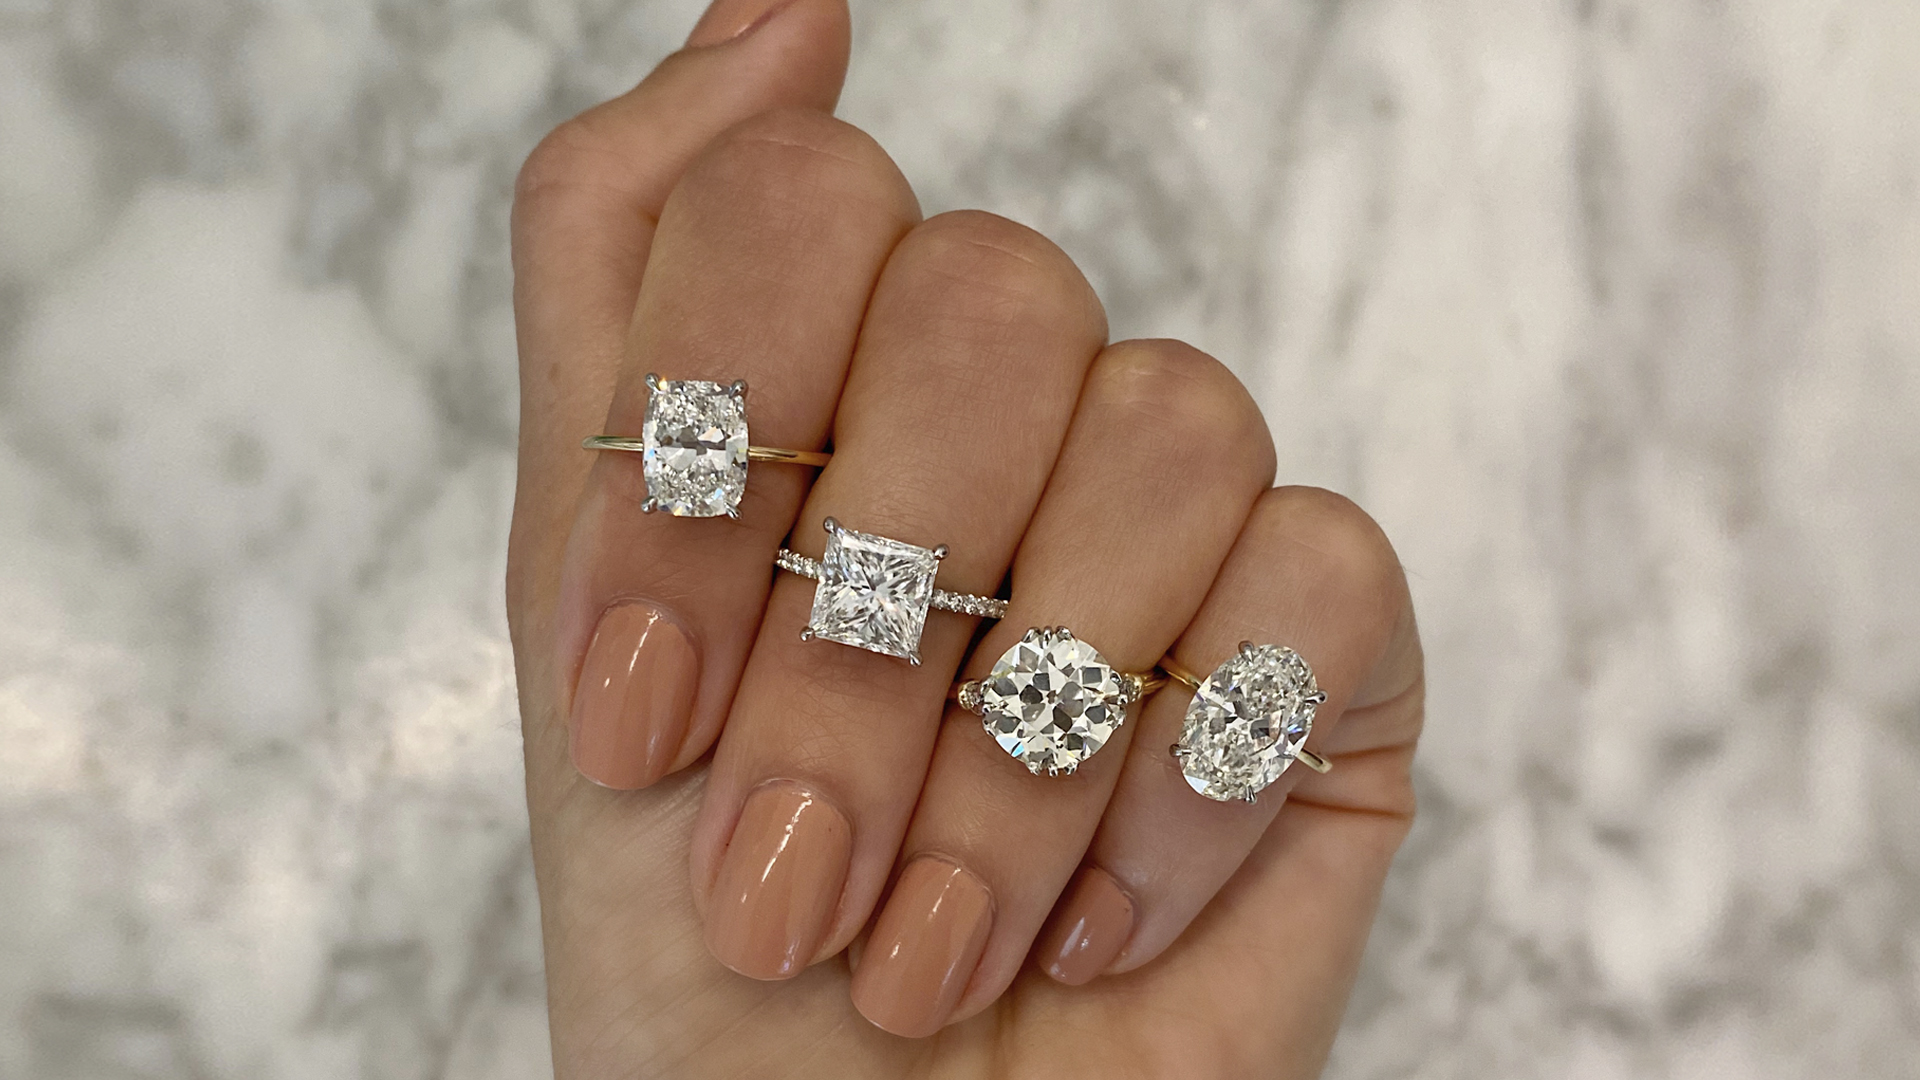 Get the best collection of stones for your ring